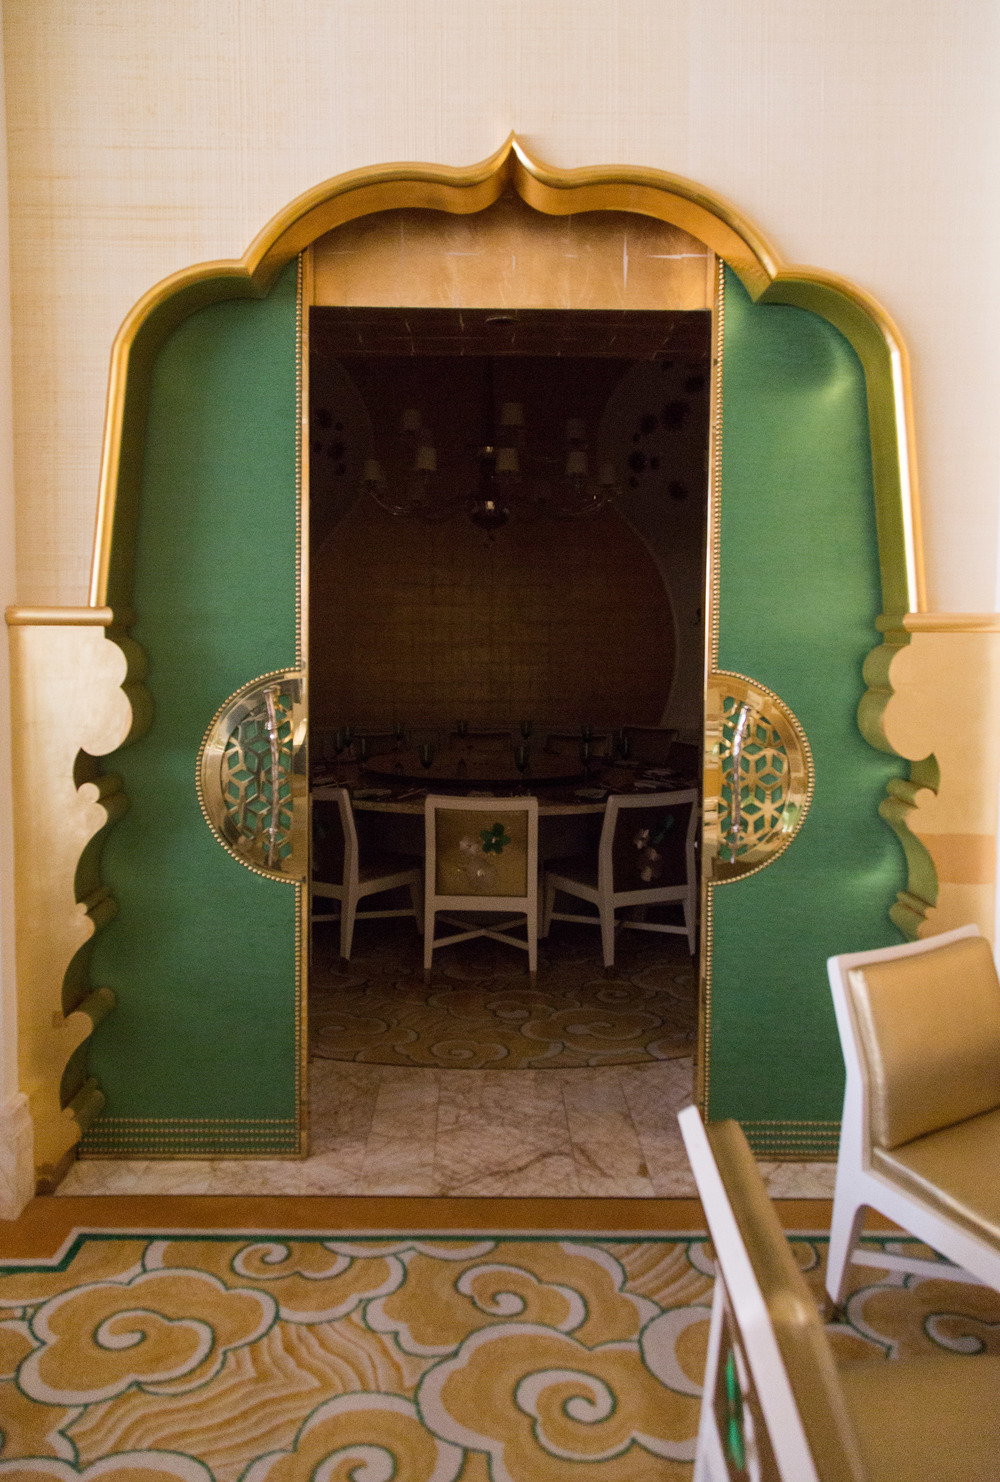 Wynn Hotel restaurant, green and gold, doors, Asian style | Photographer: Tori Aston